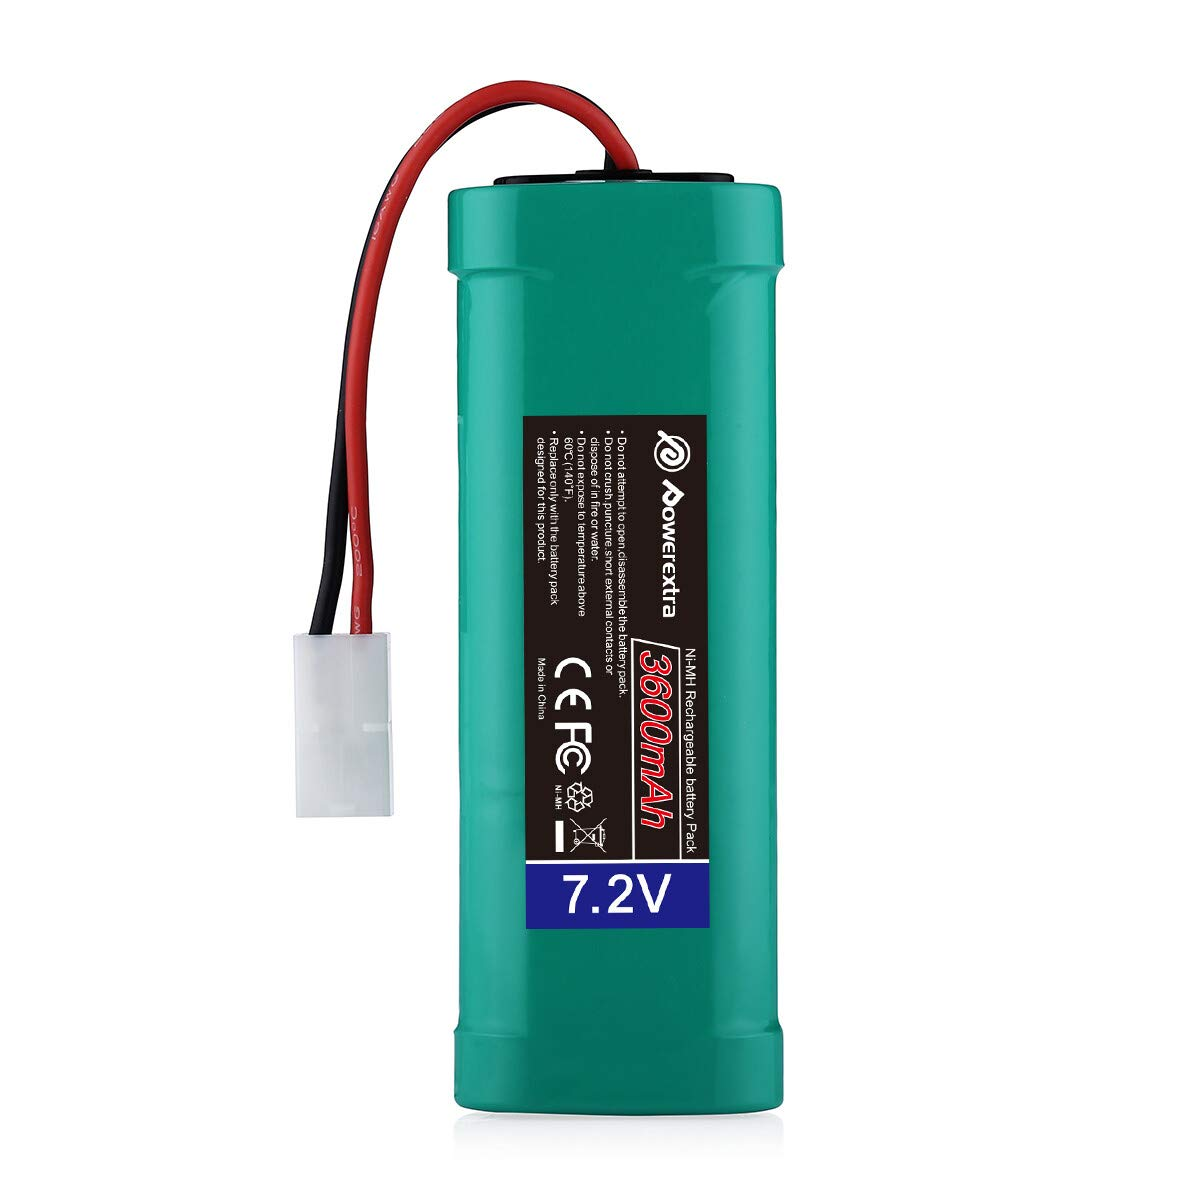 Powerextra 7.2V 3600mAh High Capacity Rechargeable 6-Cell NiMH Battery Pack Low-self Discharge with Standard Tamiya Connectors Compatiable RC Cars, RC Truck, RC Airplane, RC Helicopter, RC Boat